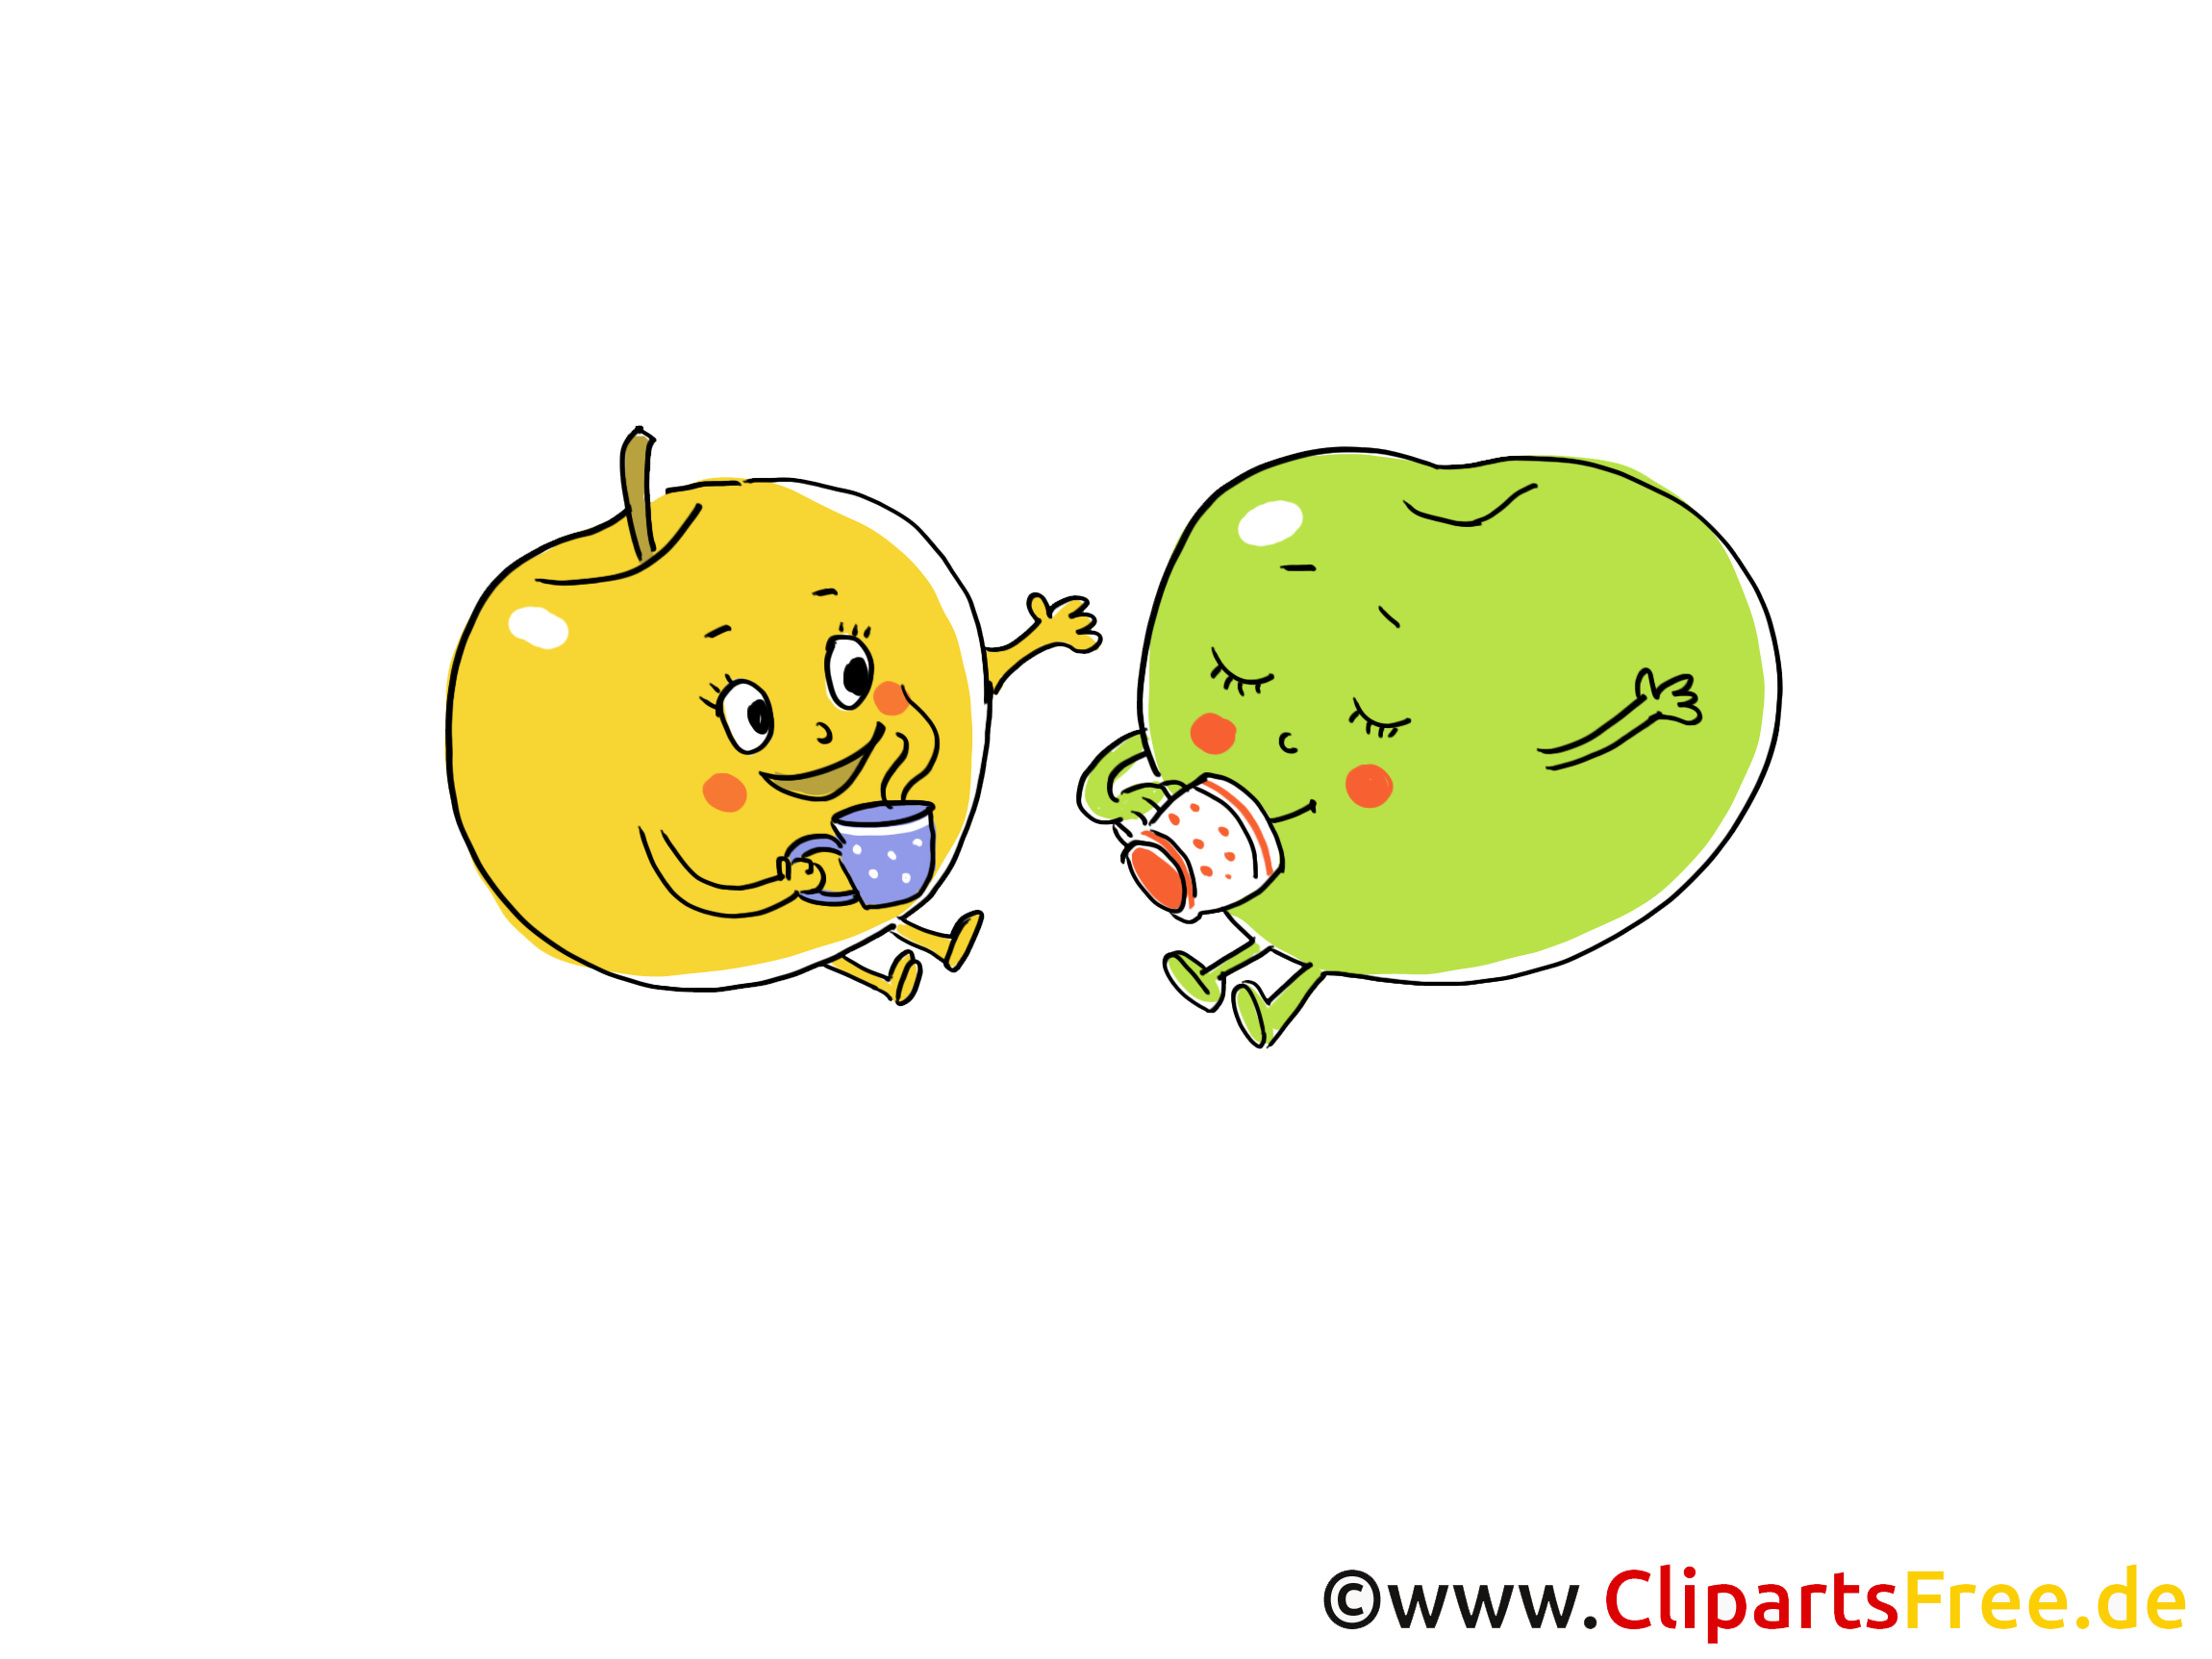 Dessin gratuit fruits image t l charger fruits et l gumes dessin picture image graphic - Dessins gratuits a telecharger ...